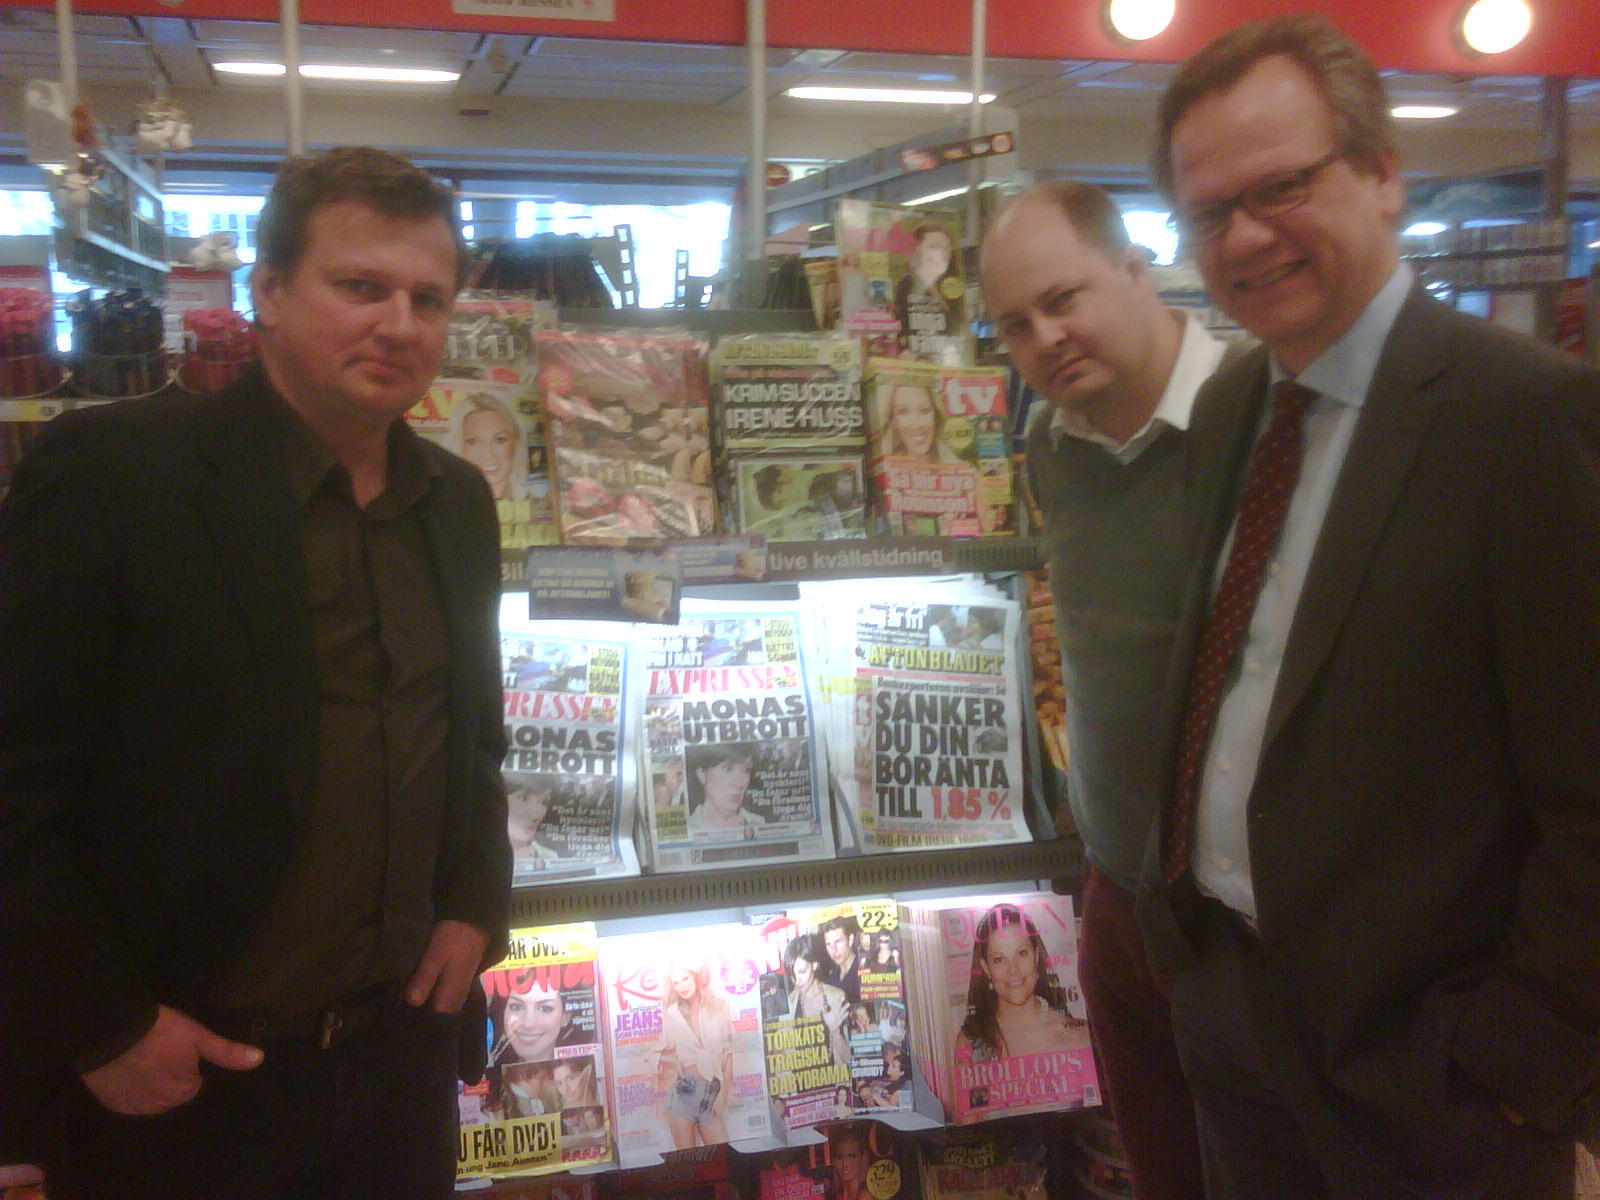 Mats Lothen, Thomas Mattsson, and Bengt Ottosson at a grocery store checkout in Stockholm